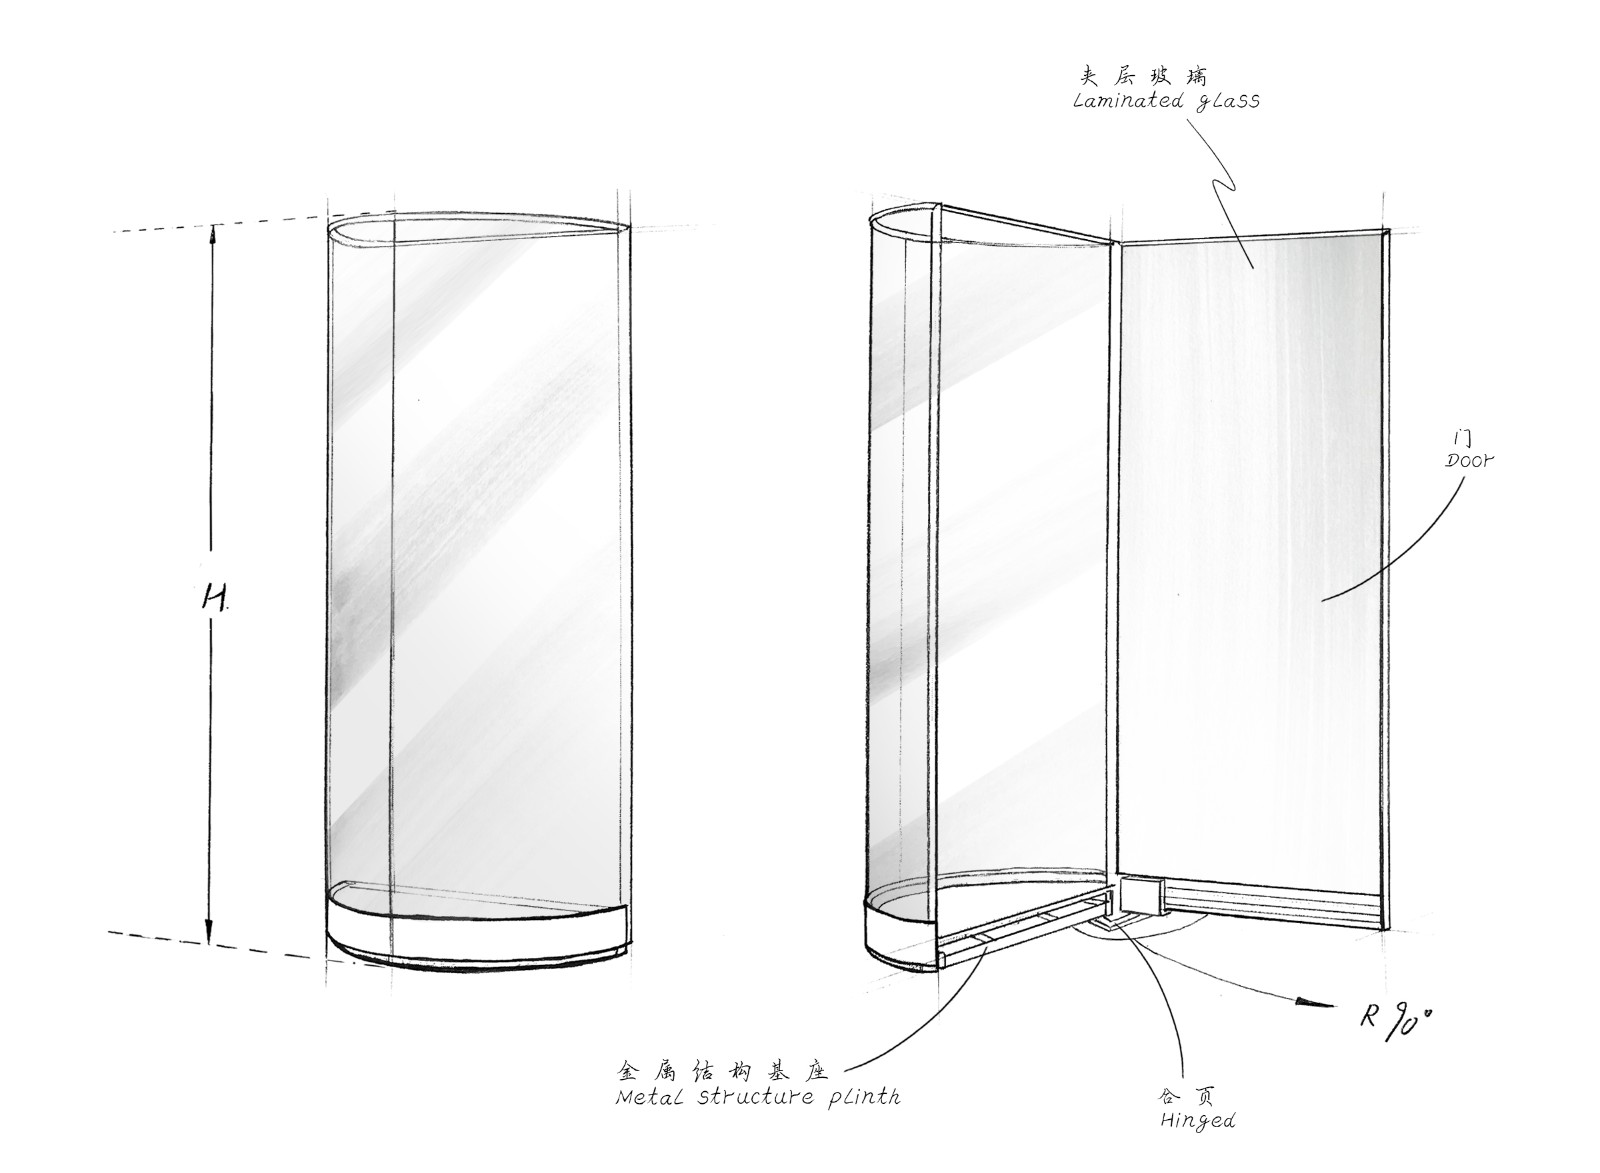 The circular arc freestanding display cases